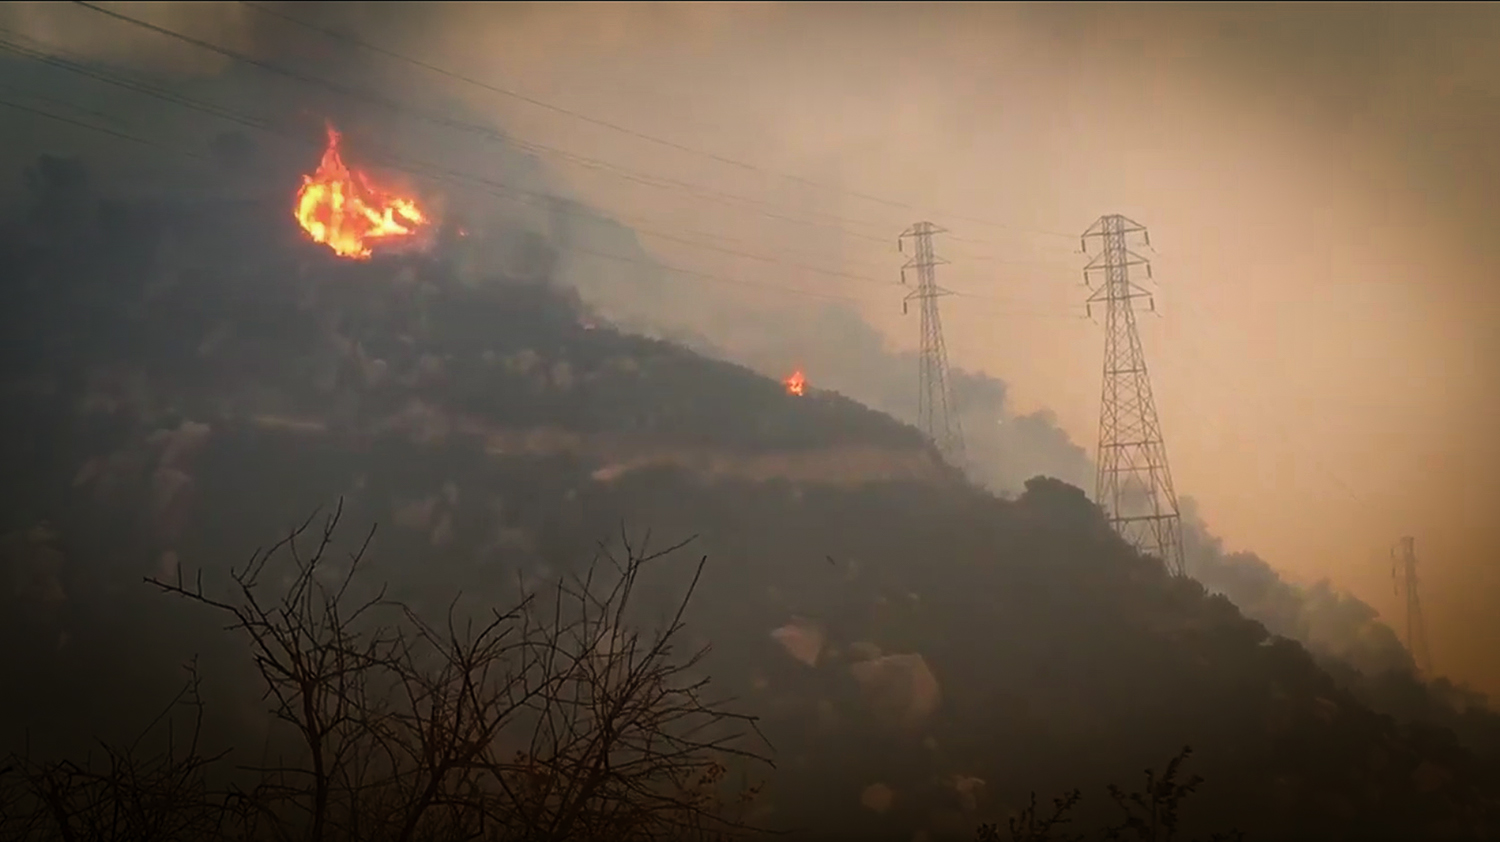 CAL FIRE: PG&E EQUIPMENT CAUSED NORTHERN CALIFORNIA FIRES -